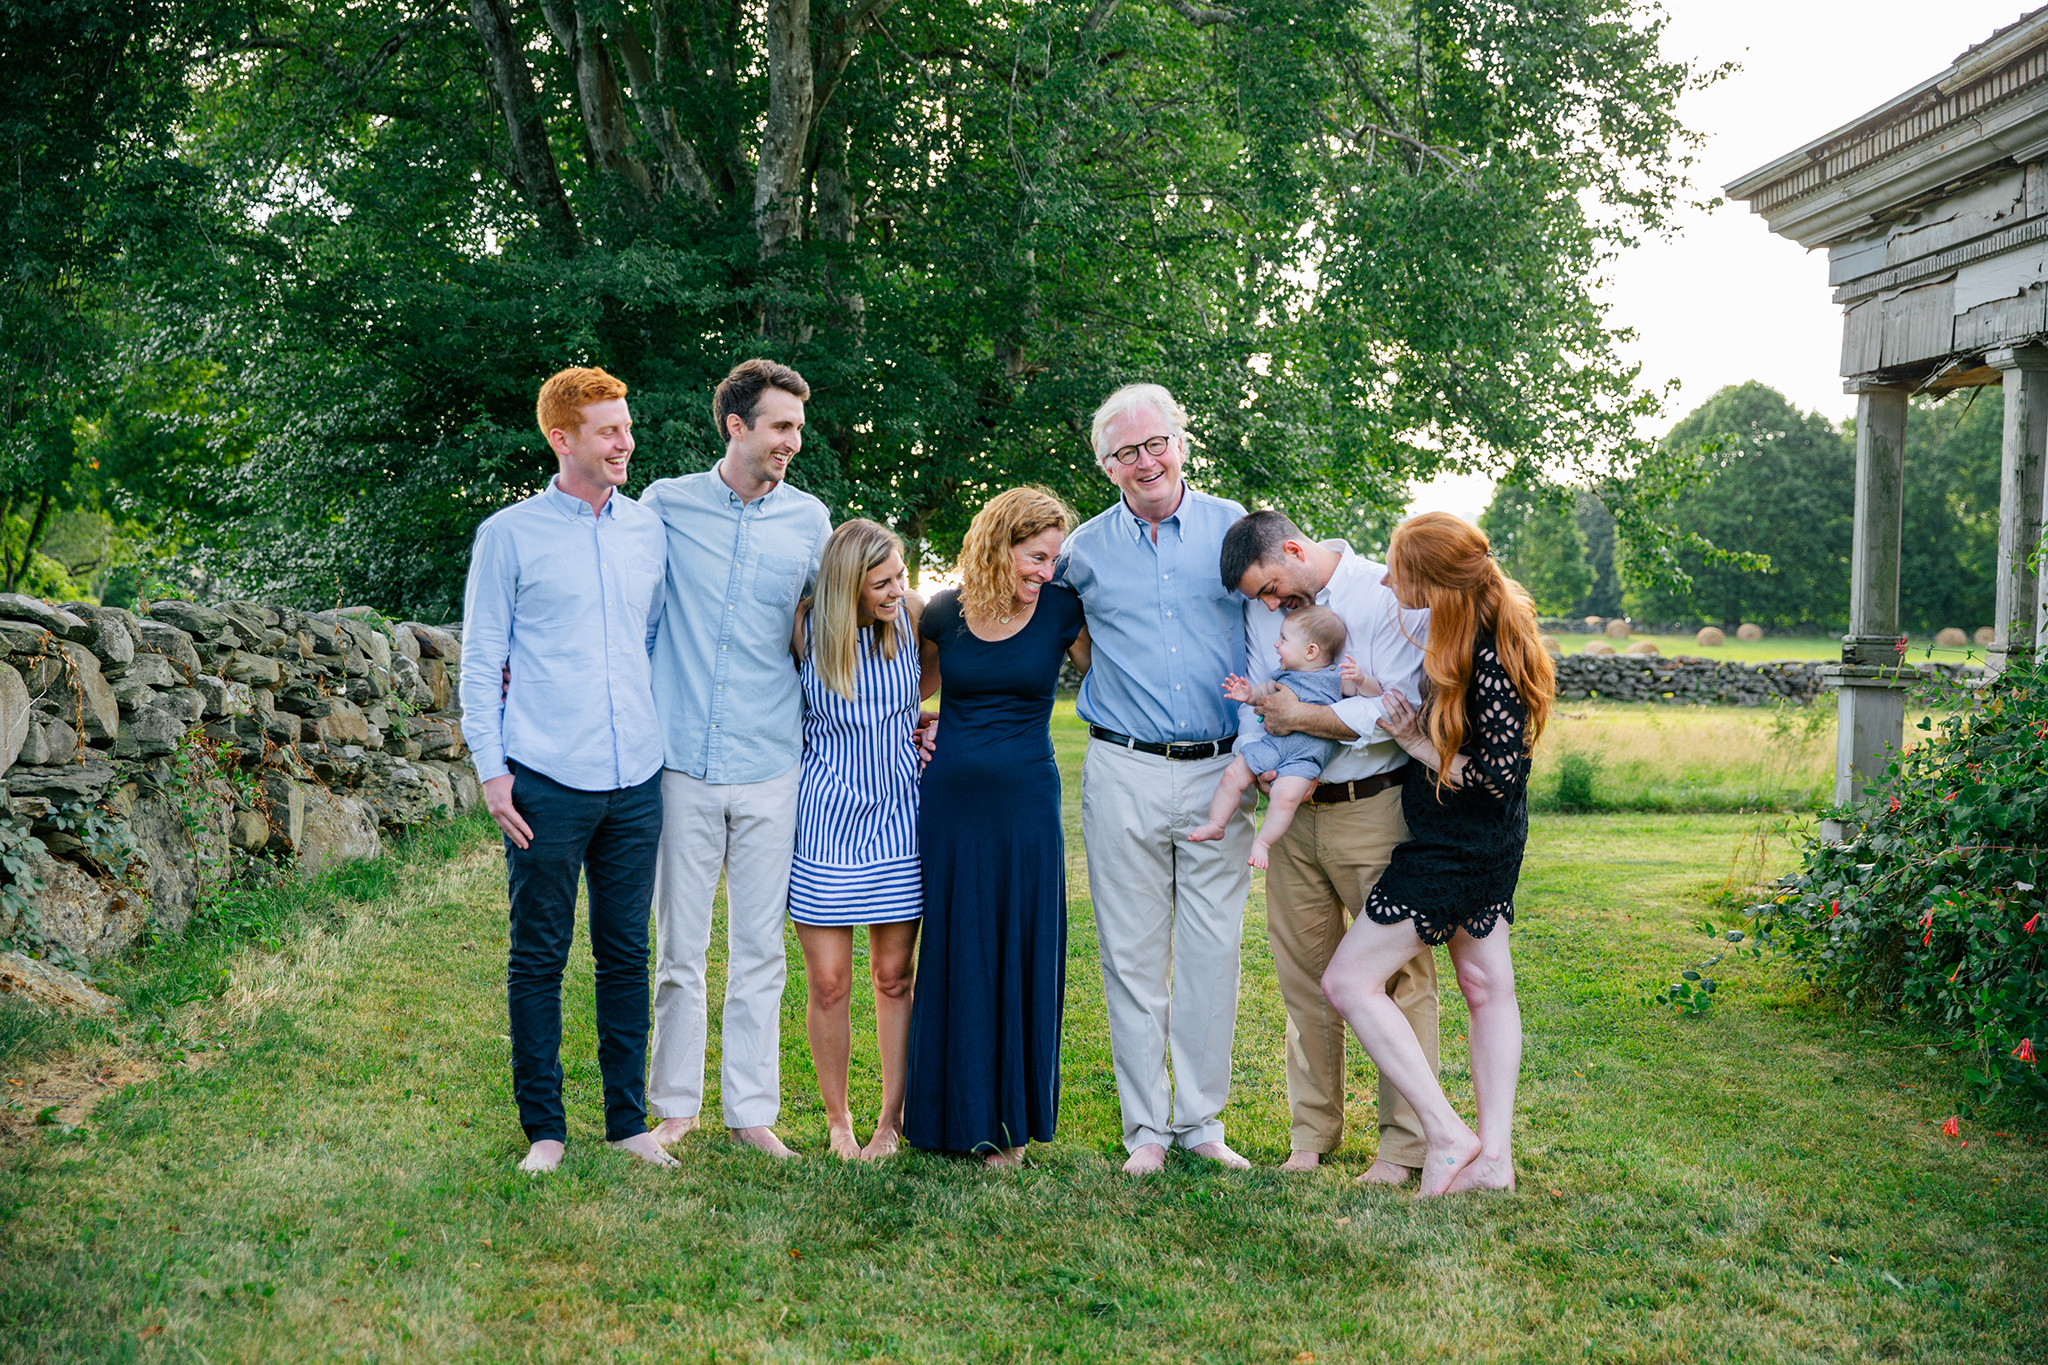 photography by mallory - extended family photographer rhode island.jpg